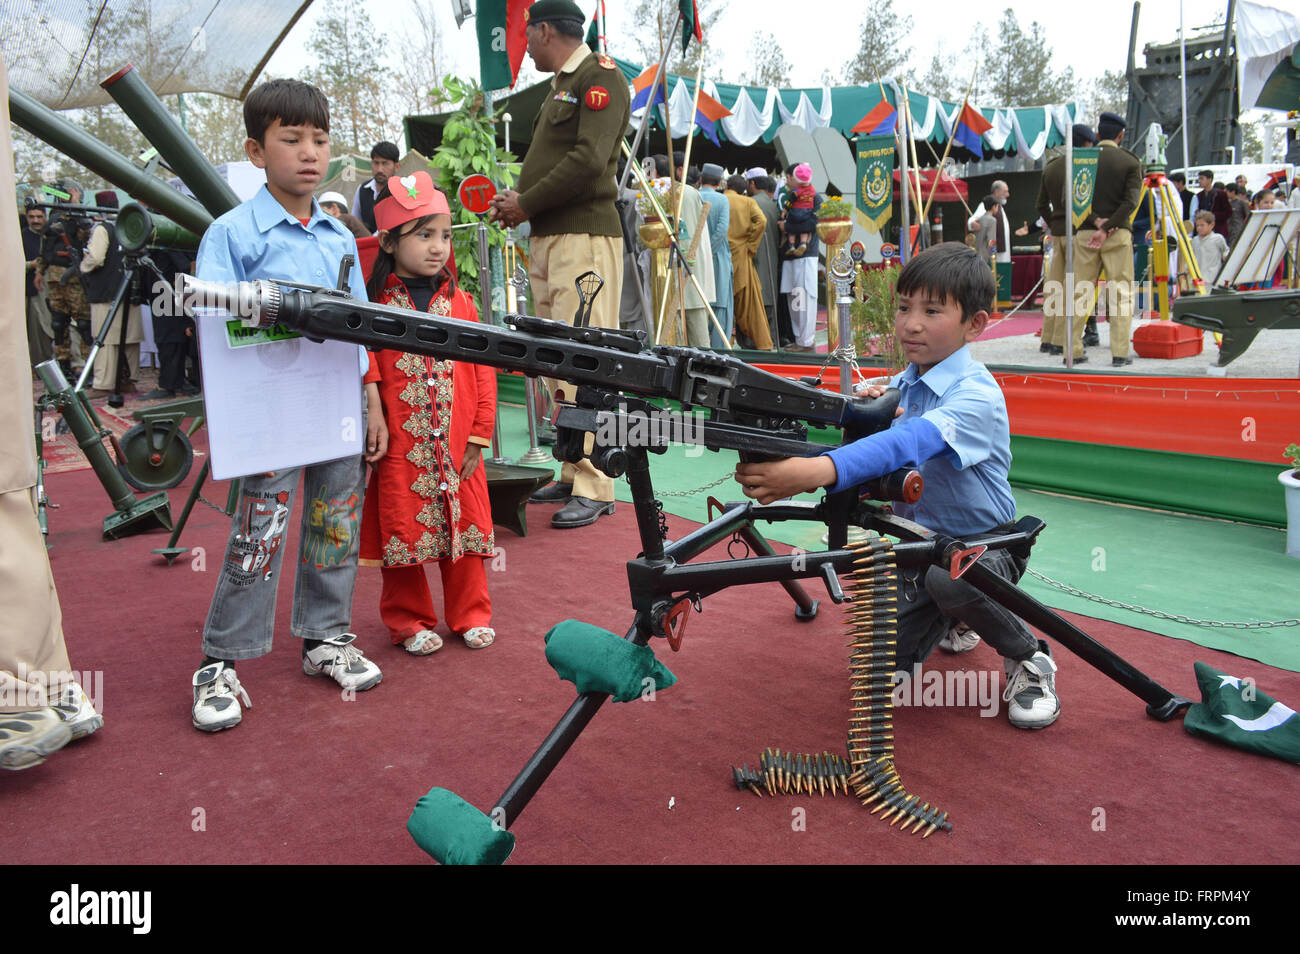 Quetta, Pakistan. 23rd Mar, 2016. A Pakistani boy poses for photos with a machine gun during a military exhibition - Stock Image